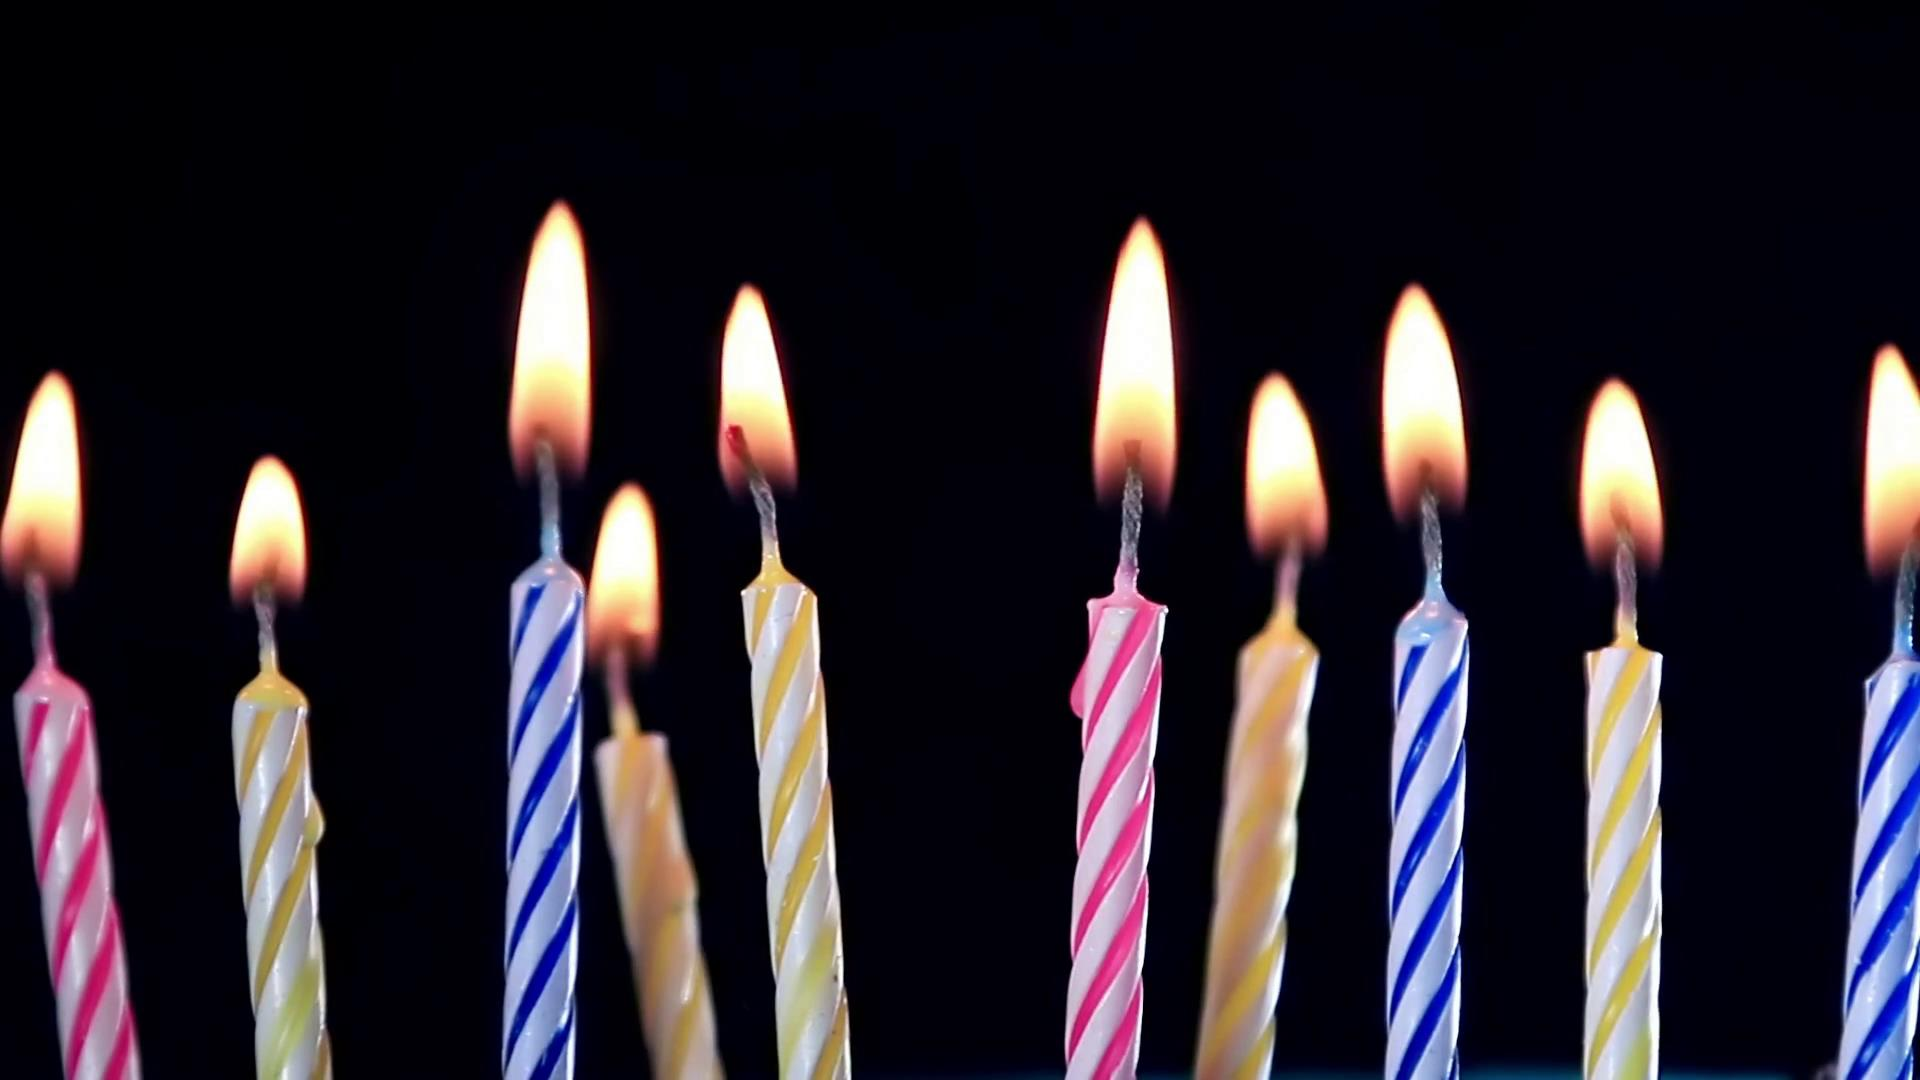 picture of birthday candles burning ; birthday-candles-burning_hlesbxkoy_thumbnail-full01